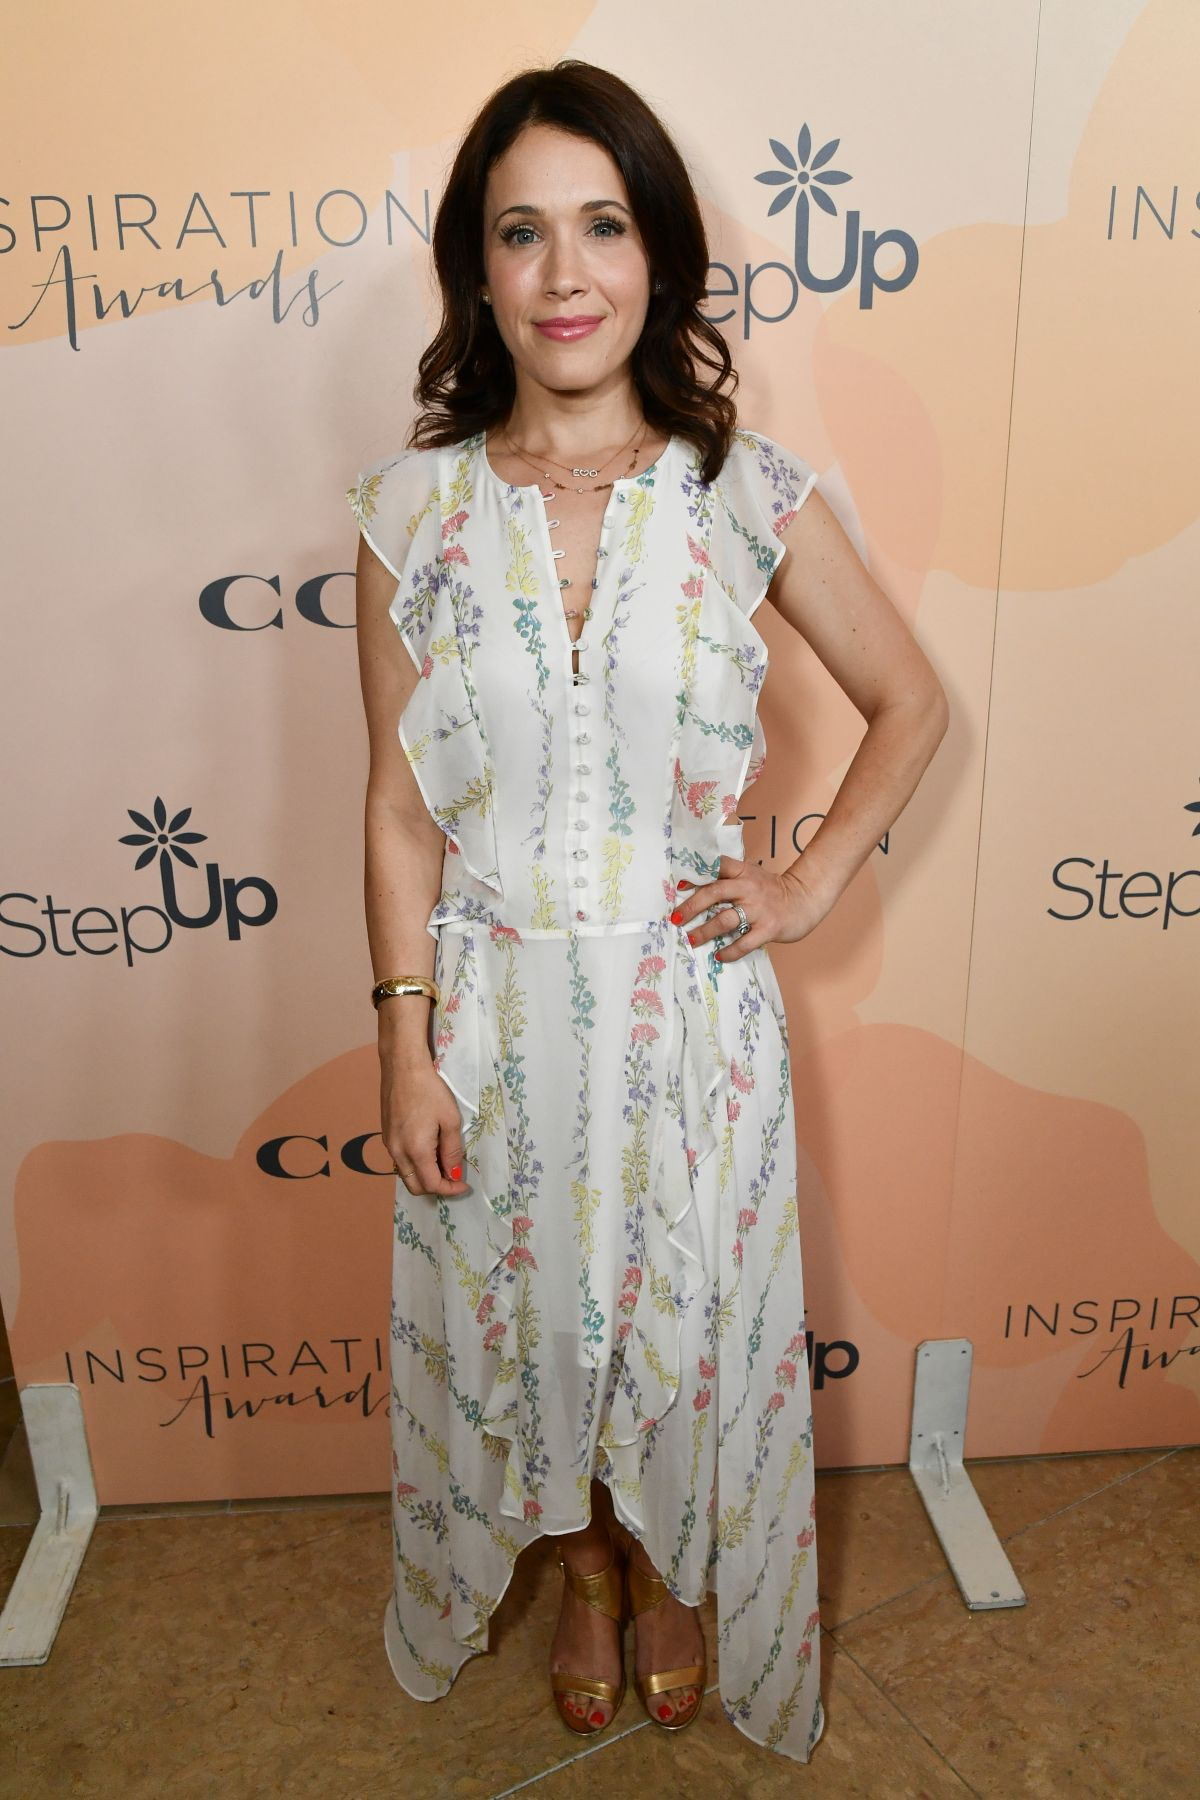 Marla Sokoloff At Inspiration Awards in LA